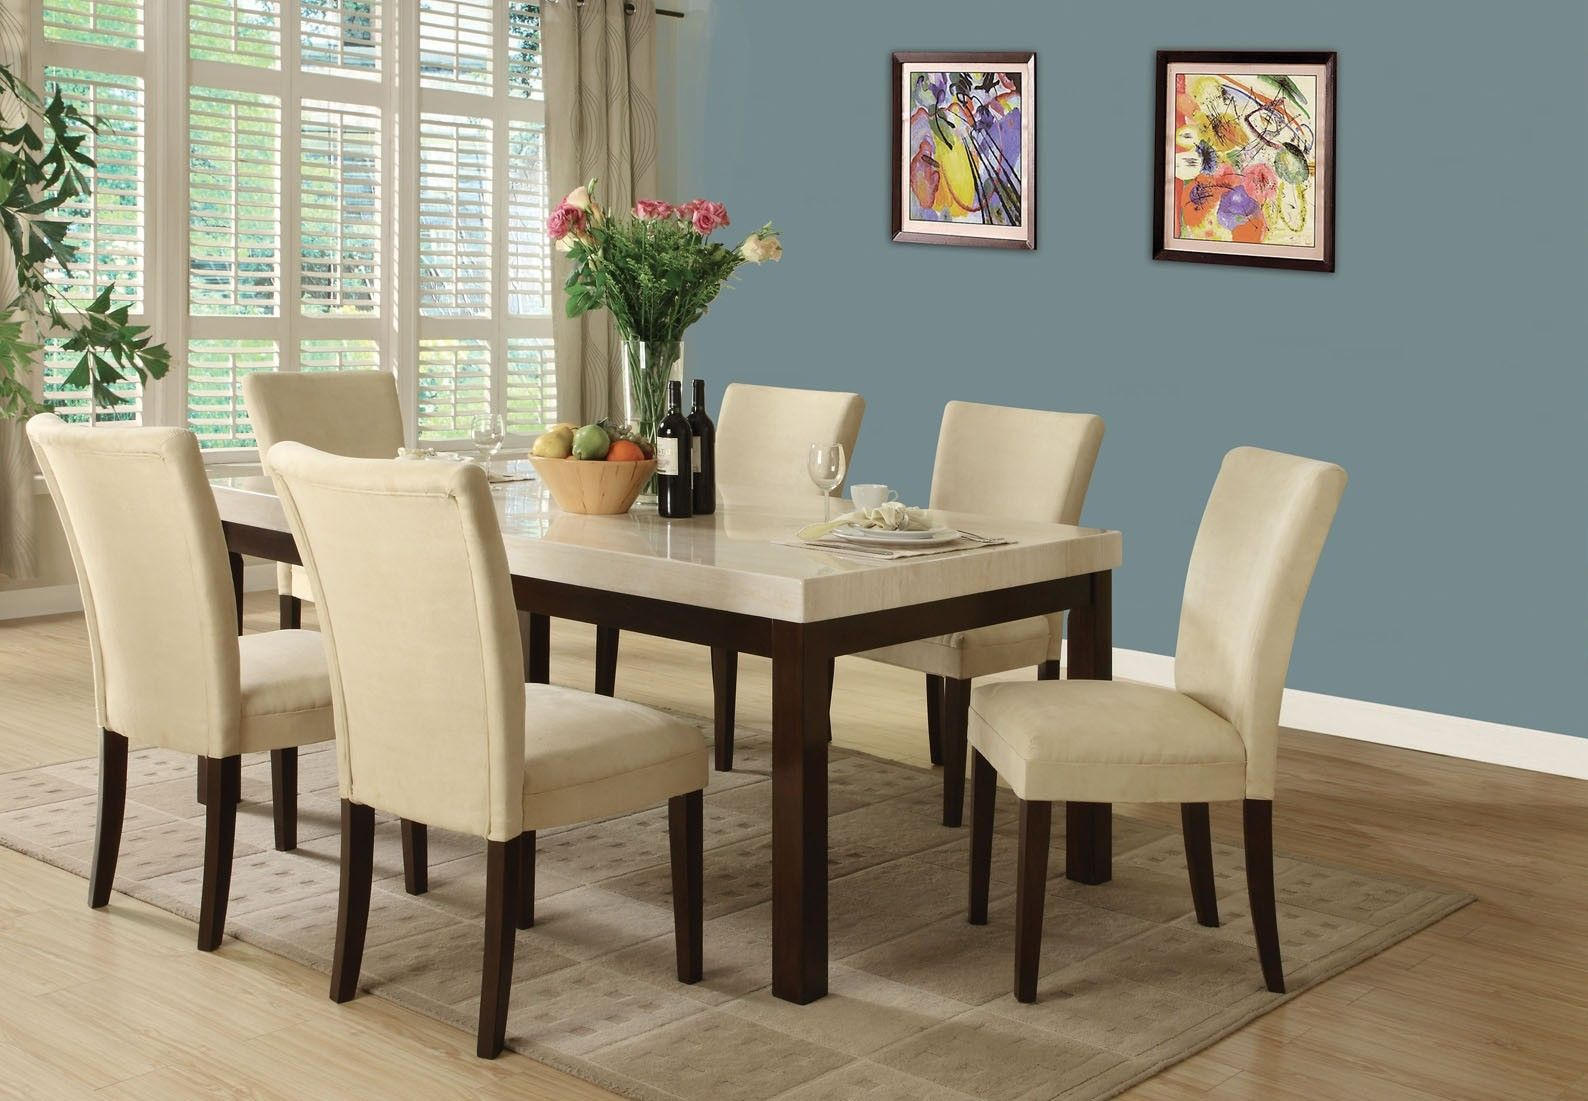 Charmant Acme Kyle 7 Piece Espresso And White Faux Marble Dining Set